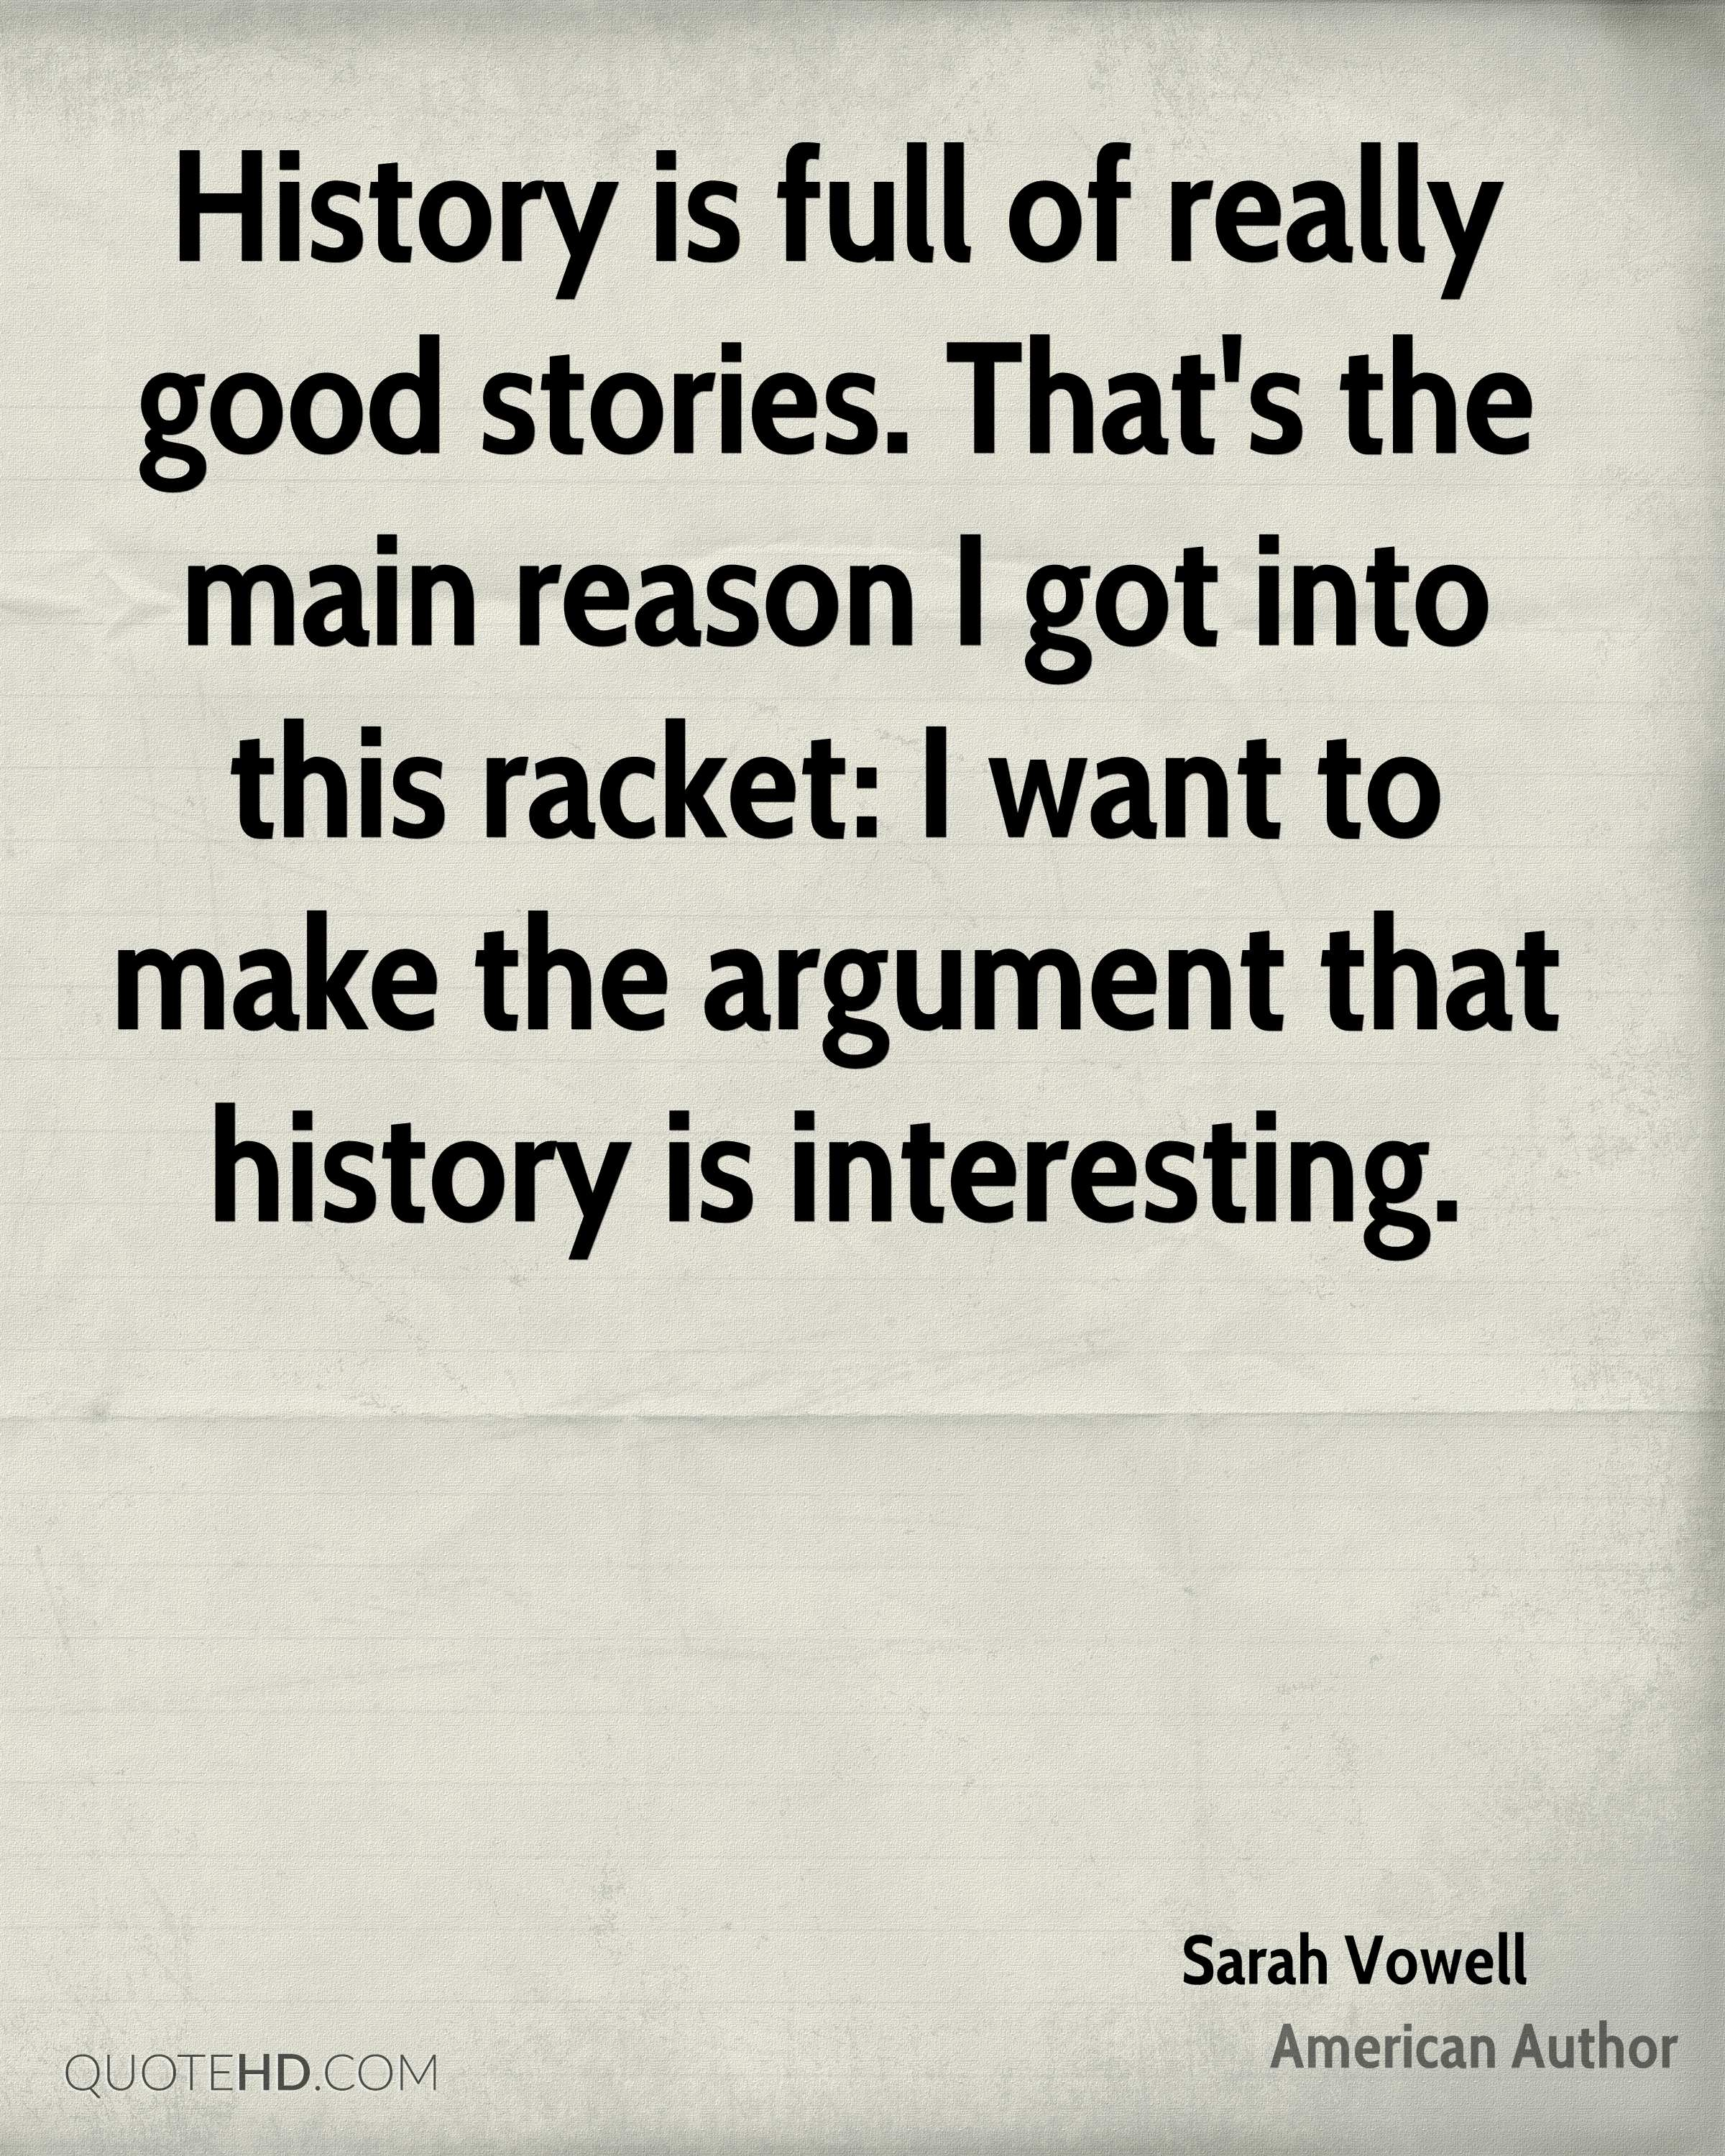 Sarah Vowell Quotes | QuoteHD